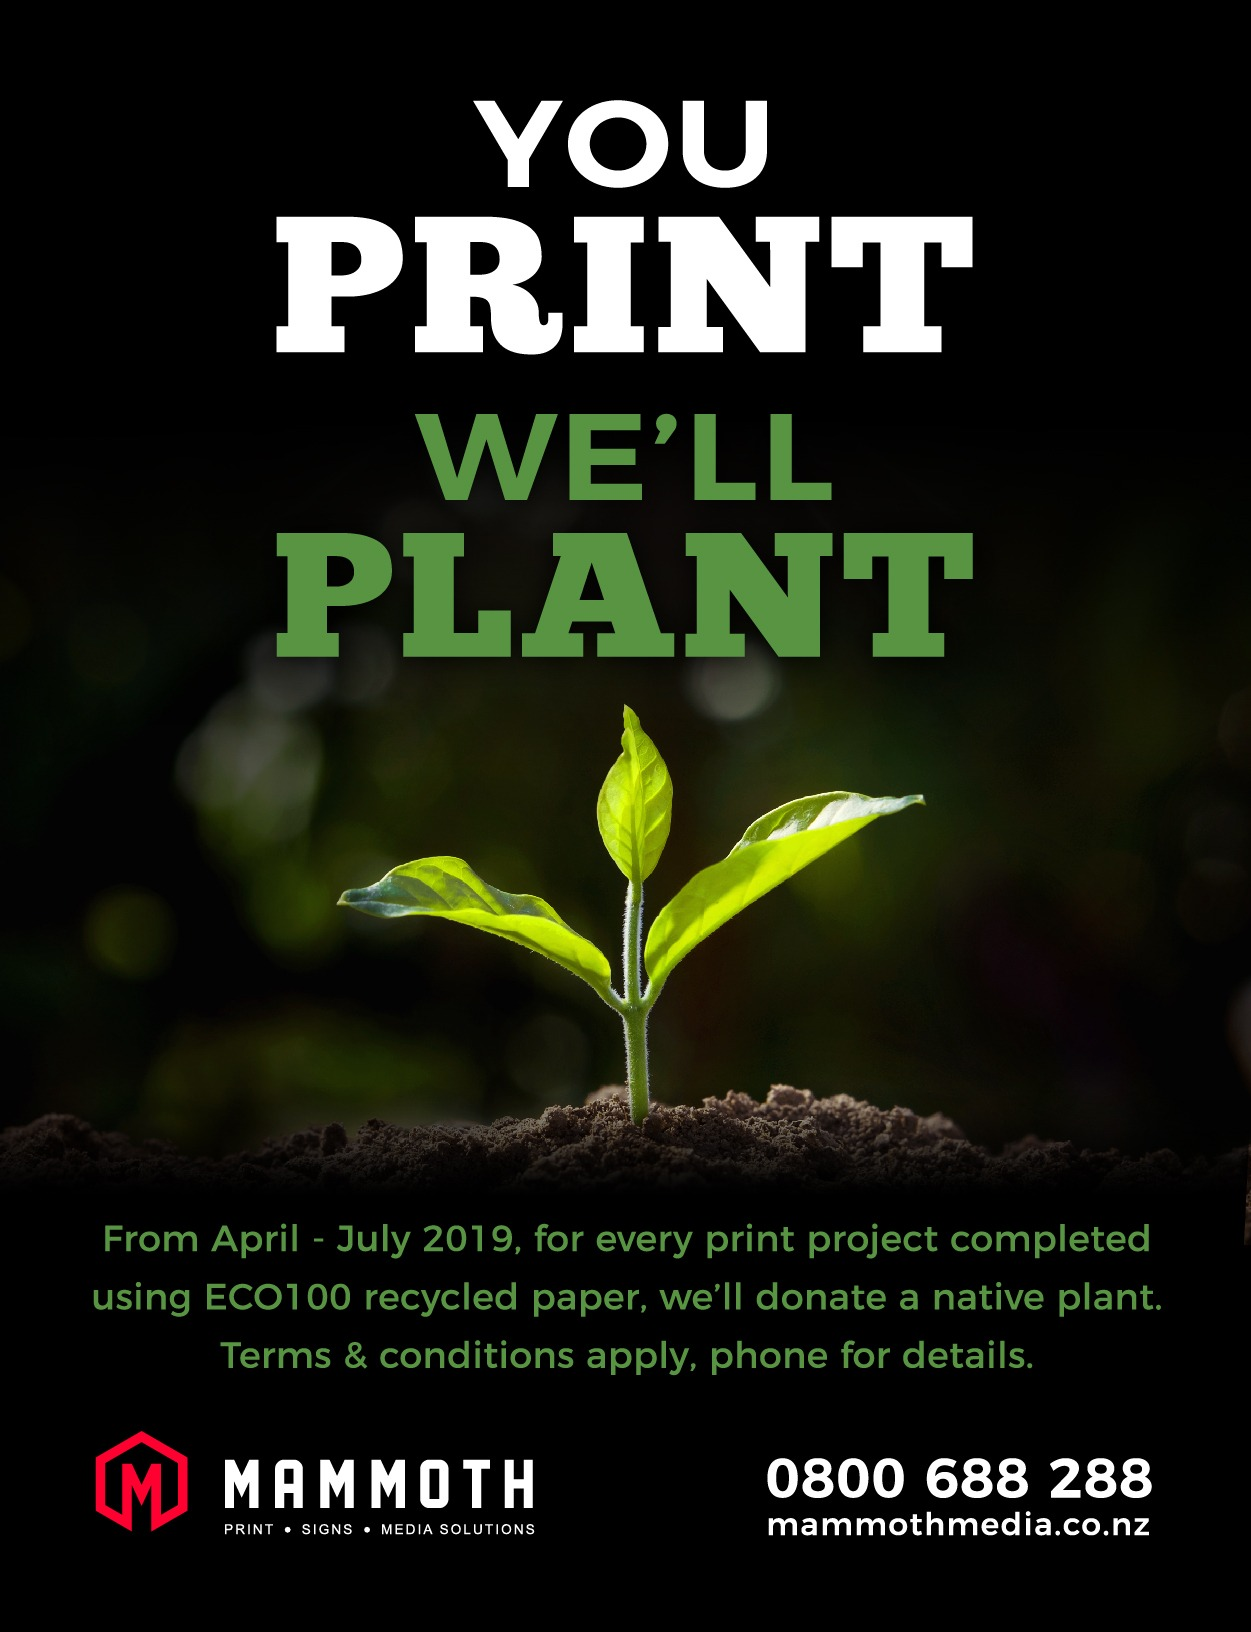 Mammoth - You Print We'll Plant